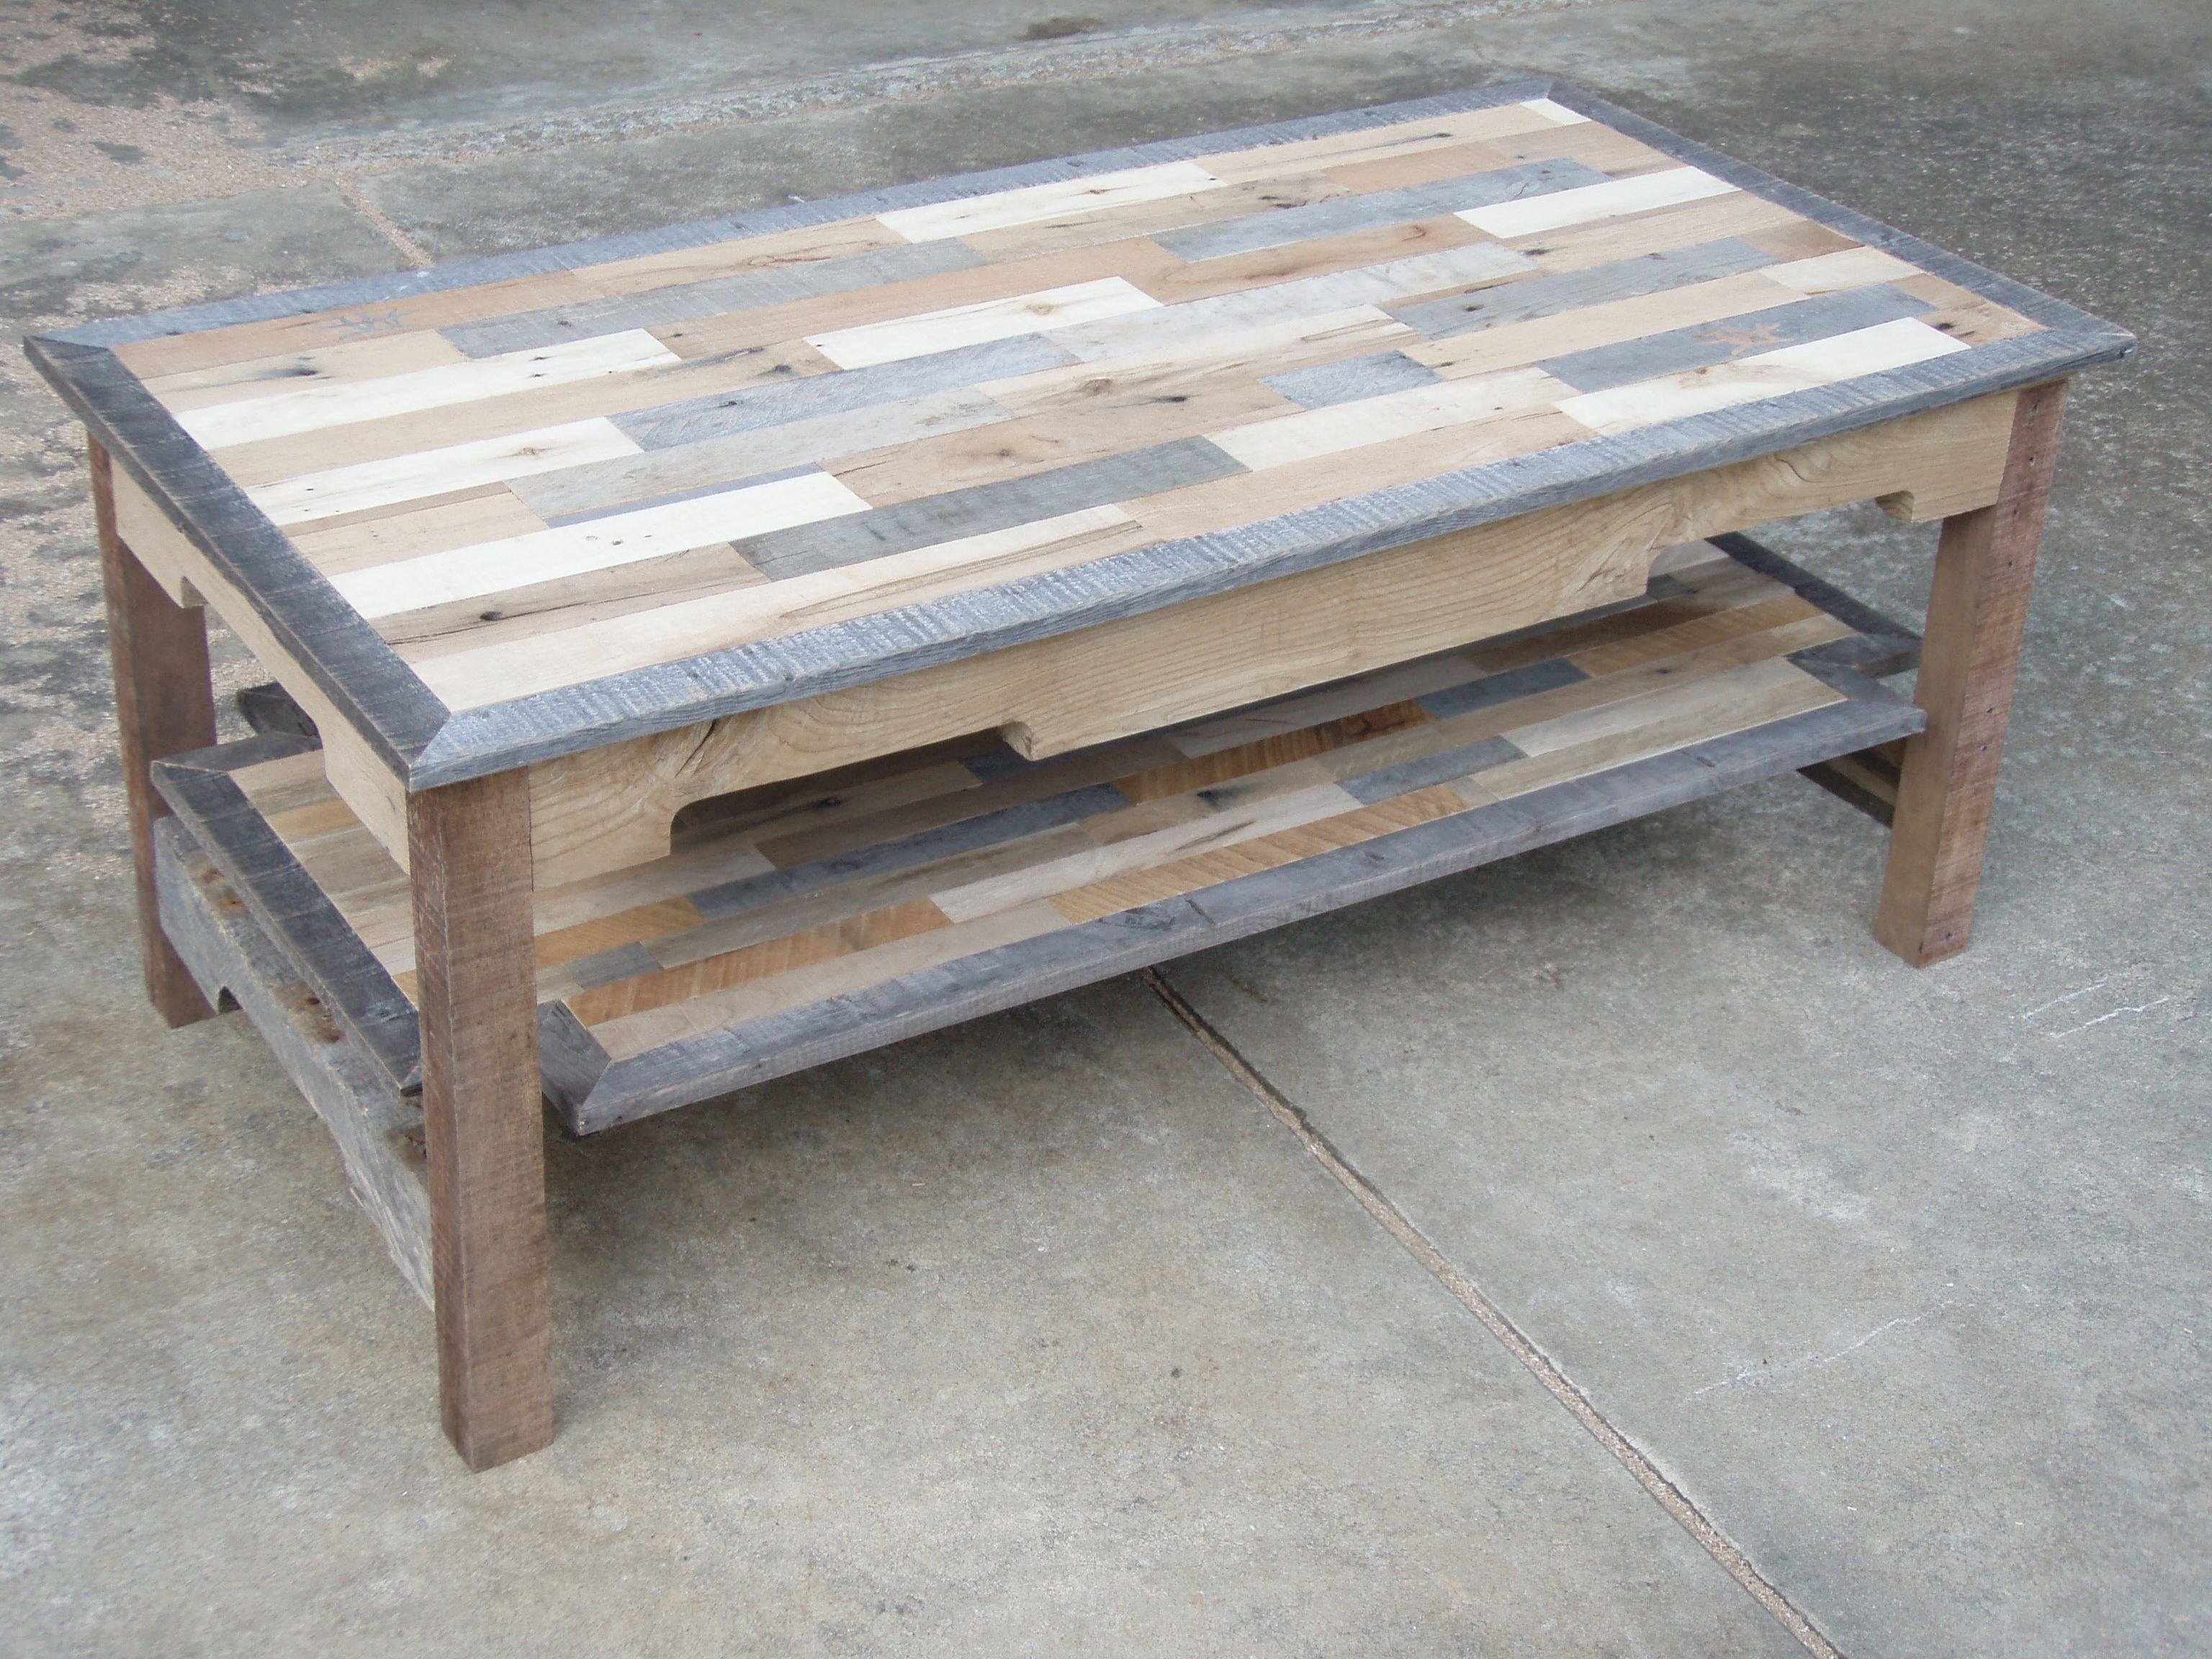 Handmade Reclaimed Pallet Wood Coffee Table By All For Knot